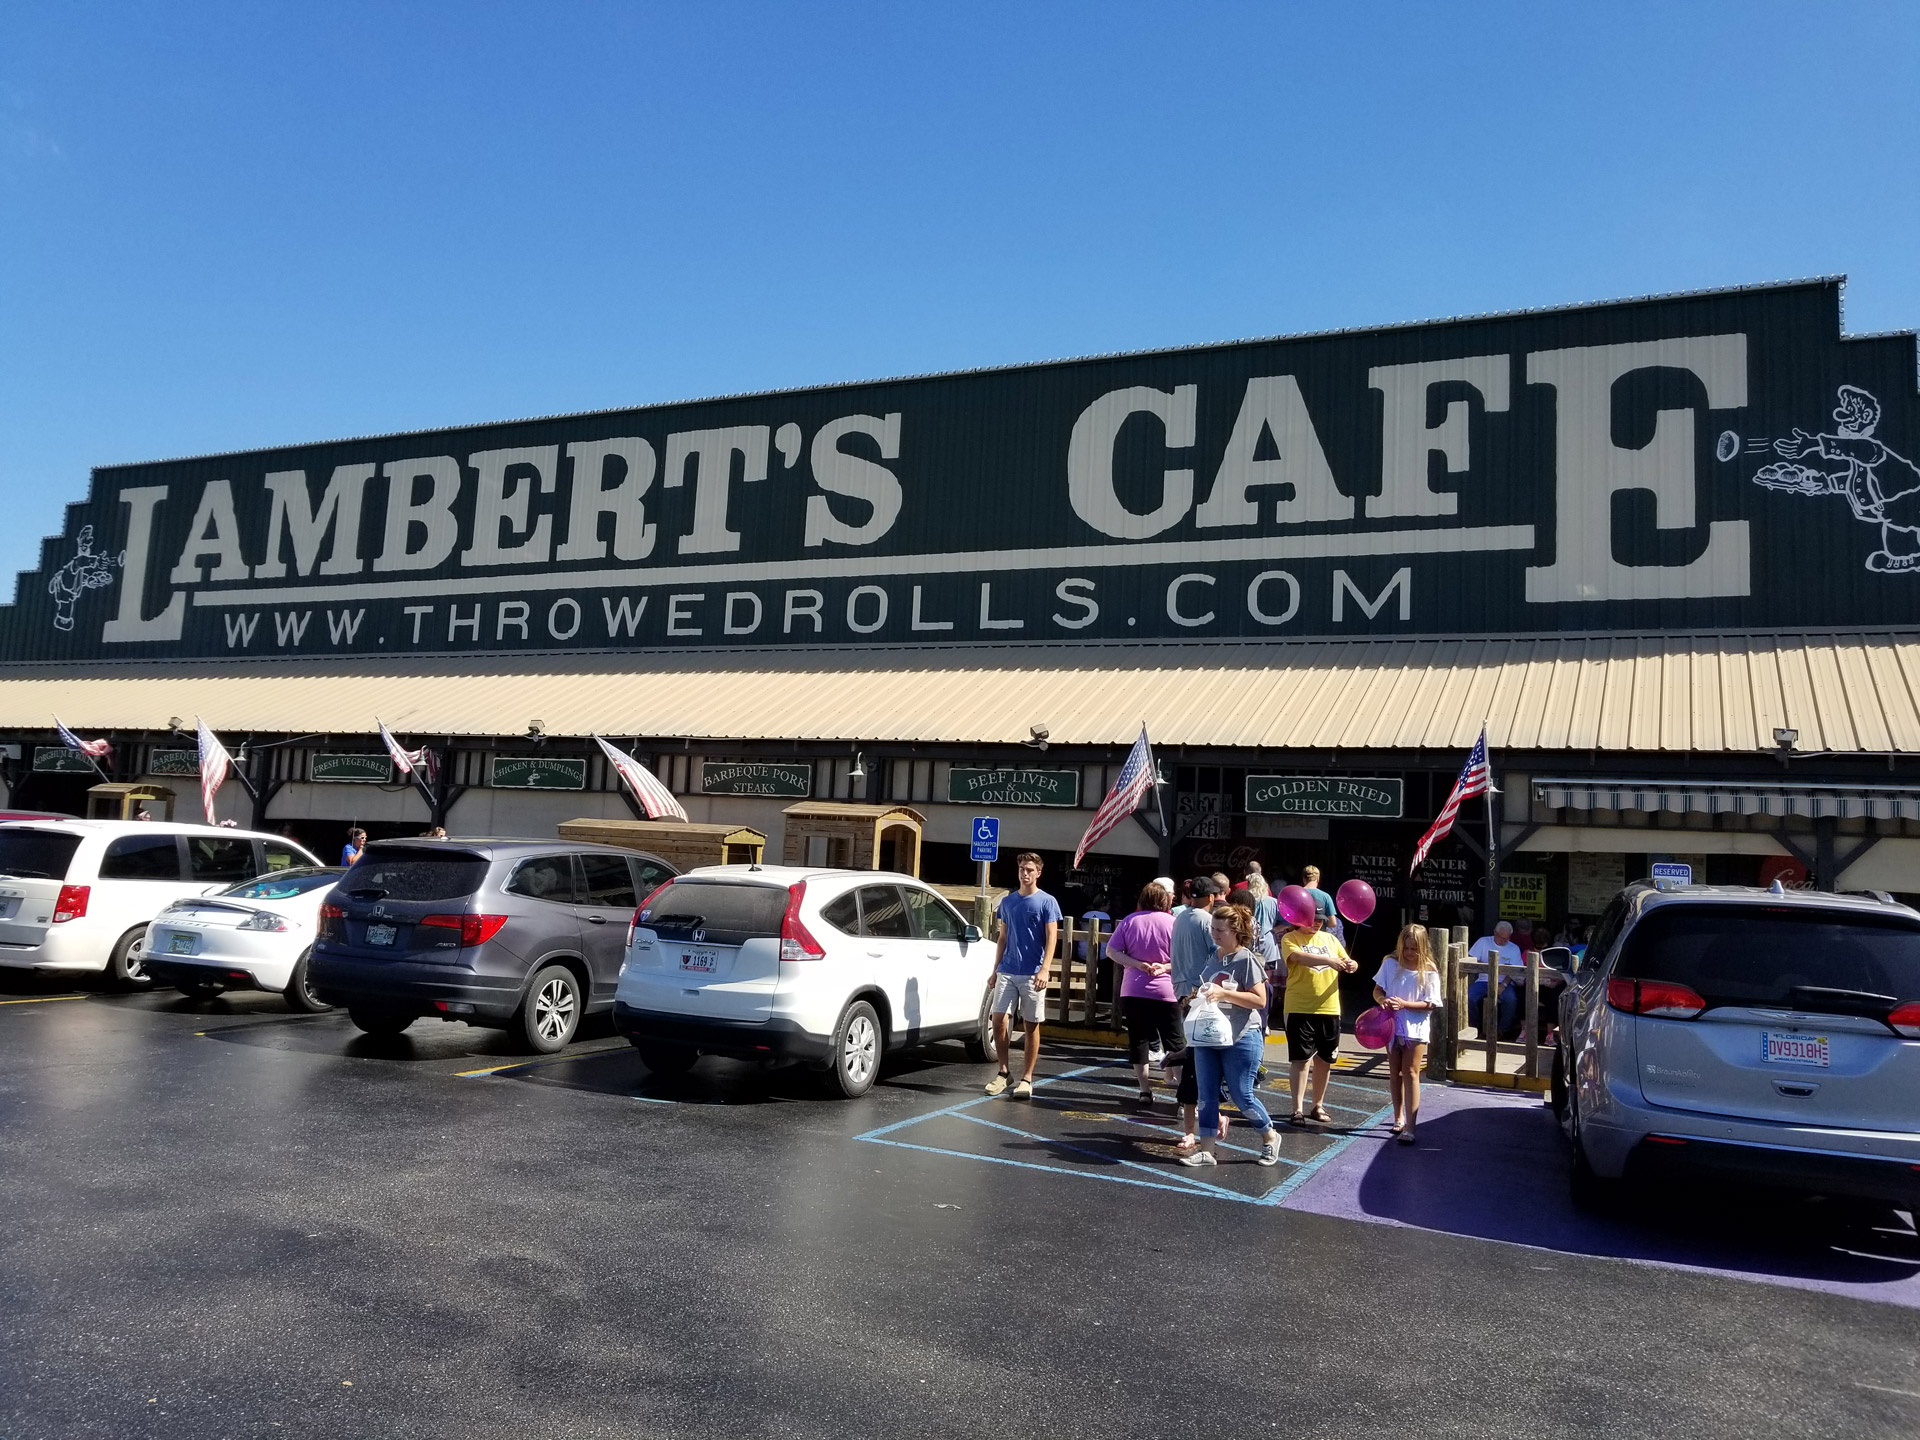 Lambert's Cafe in Gulf Shores